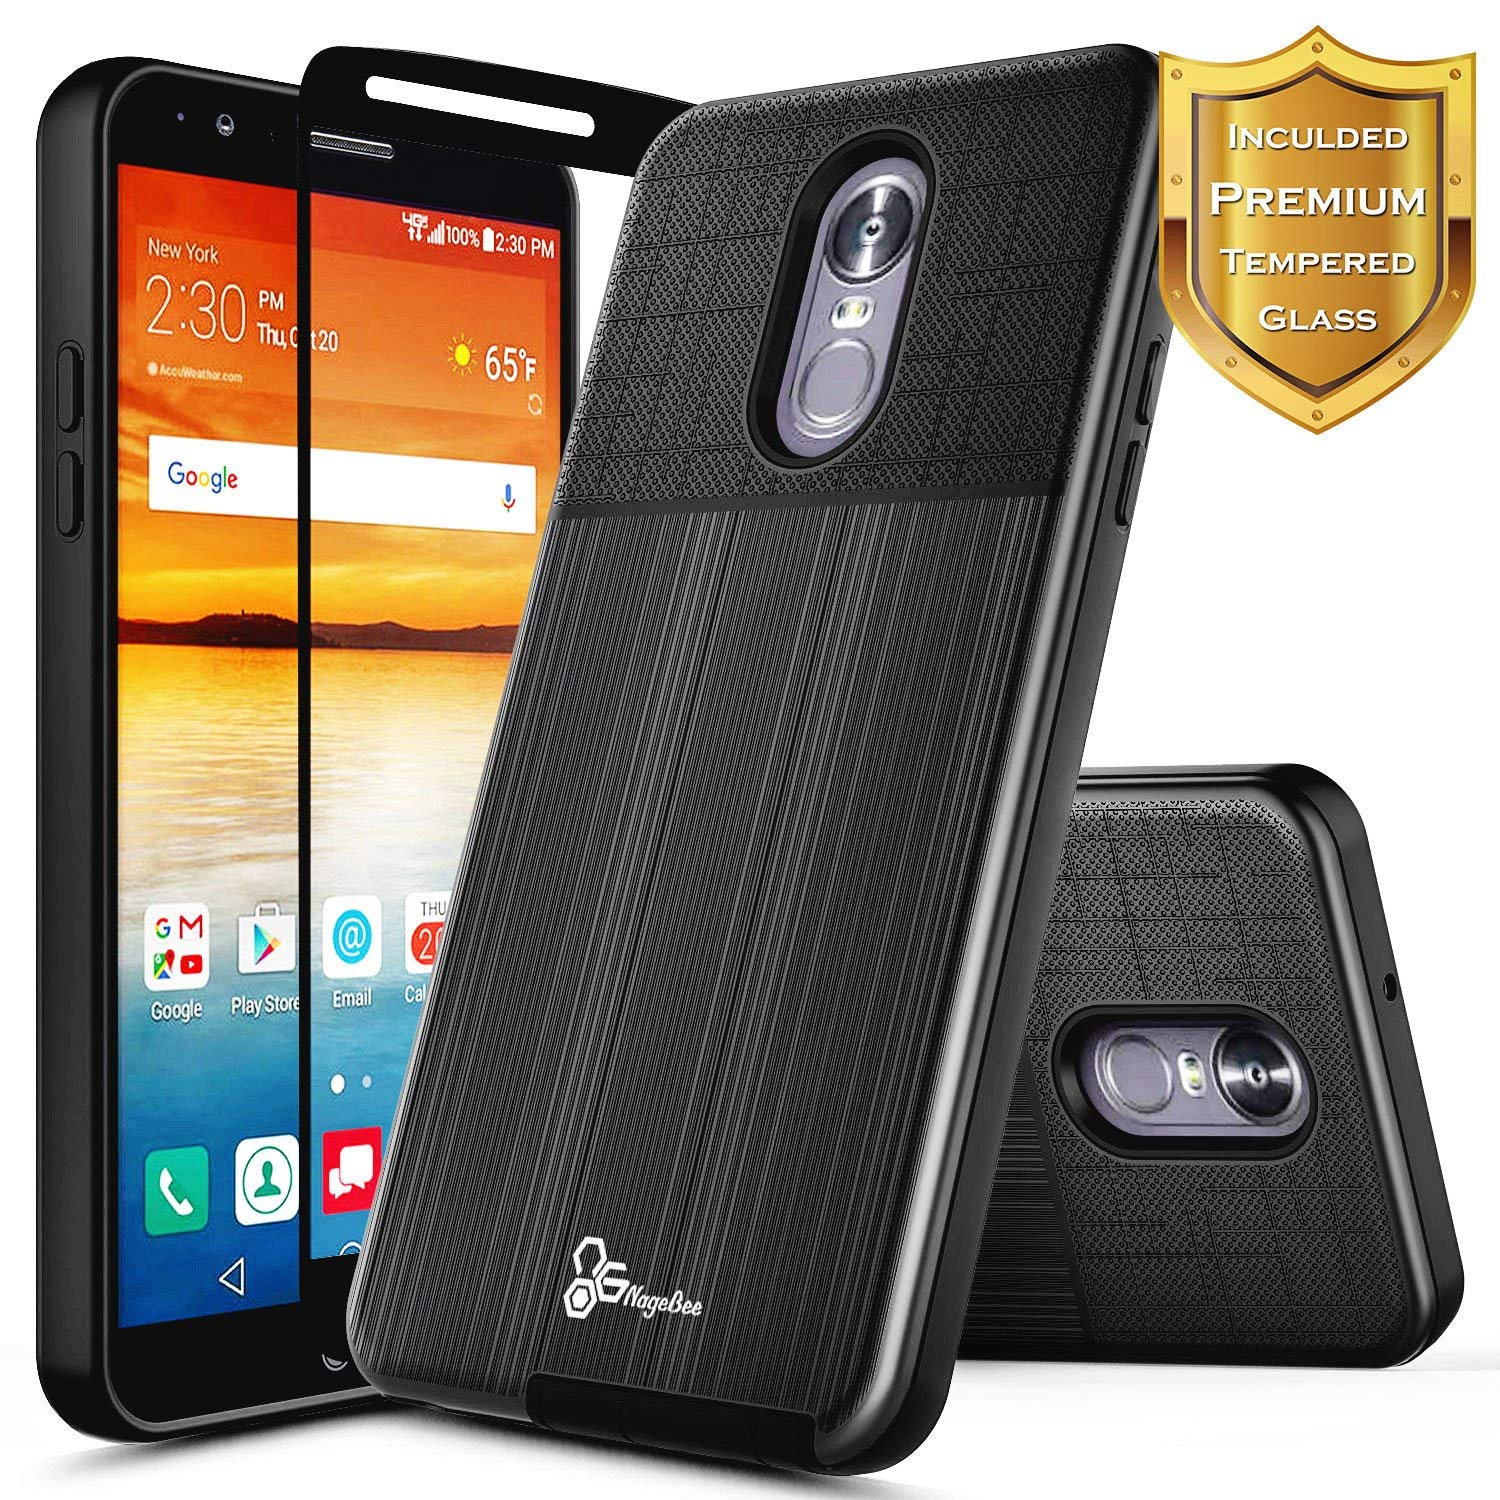 NageBee [Brushed] Case Compatible with LG Stylo 4 / Stylo 4 Plus (Q710) / LG Q Stylus w/[Full Cover Tempered Glass Screen Protector] [Heavy Duty] Defender Dual Layer Shock Proof Hybrid Case -Black